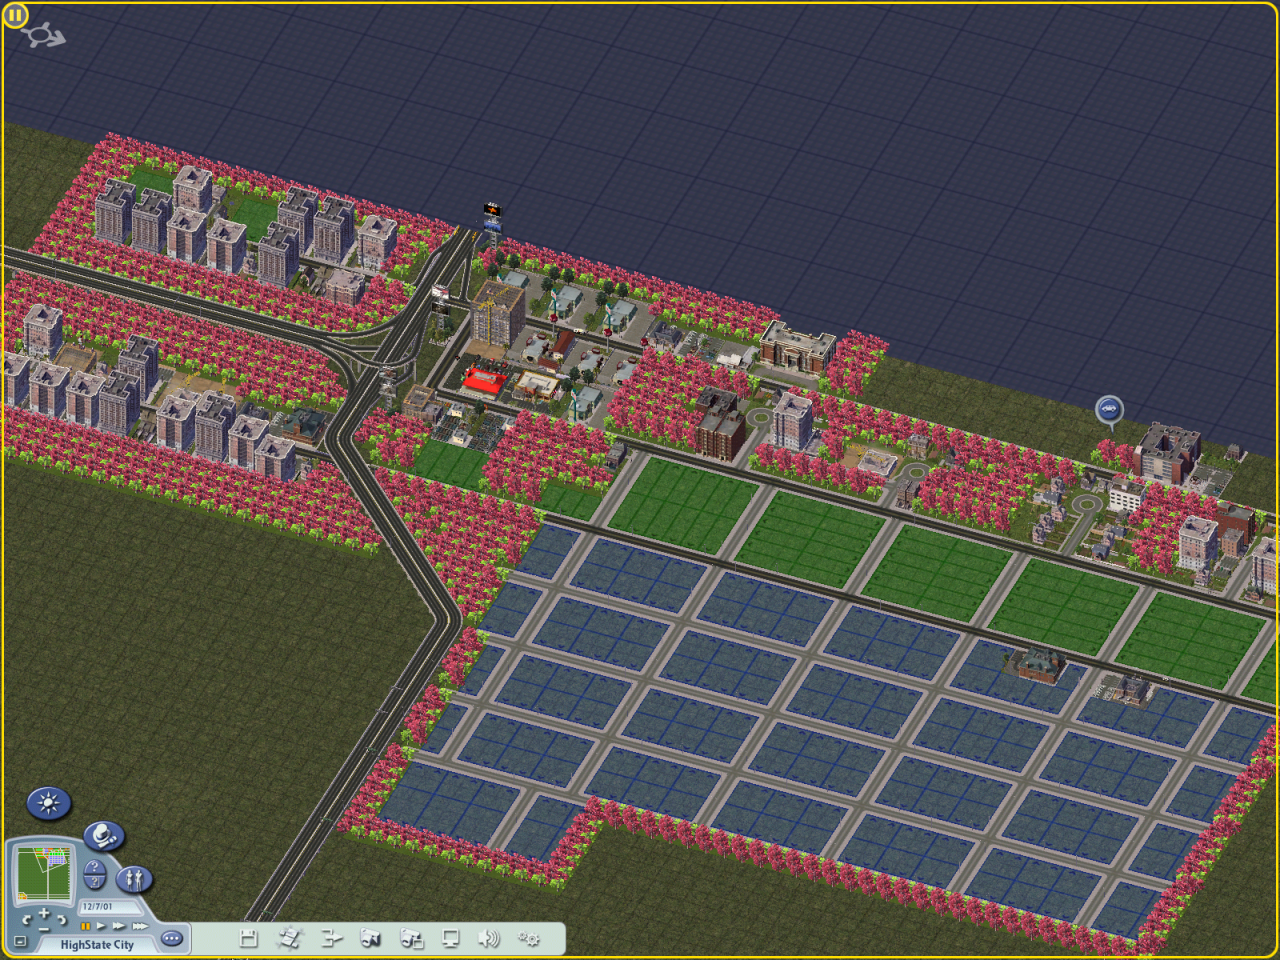 HighState City-Dec. 7, 011478454856.png